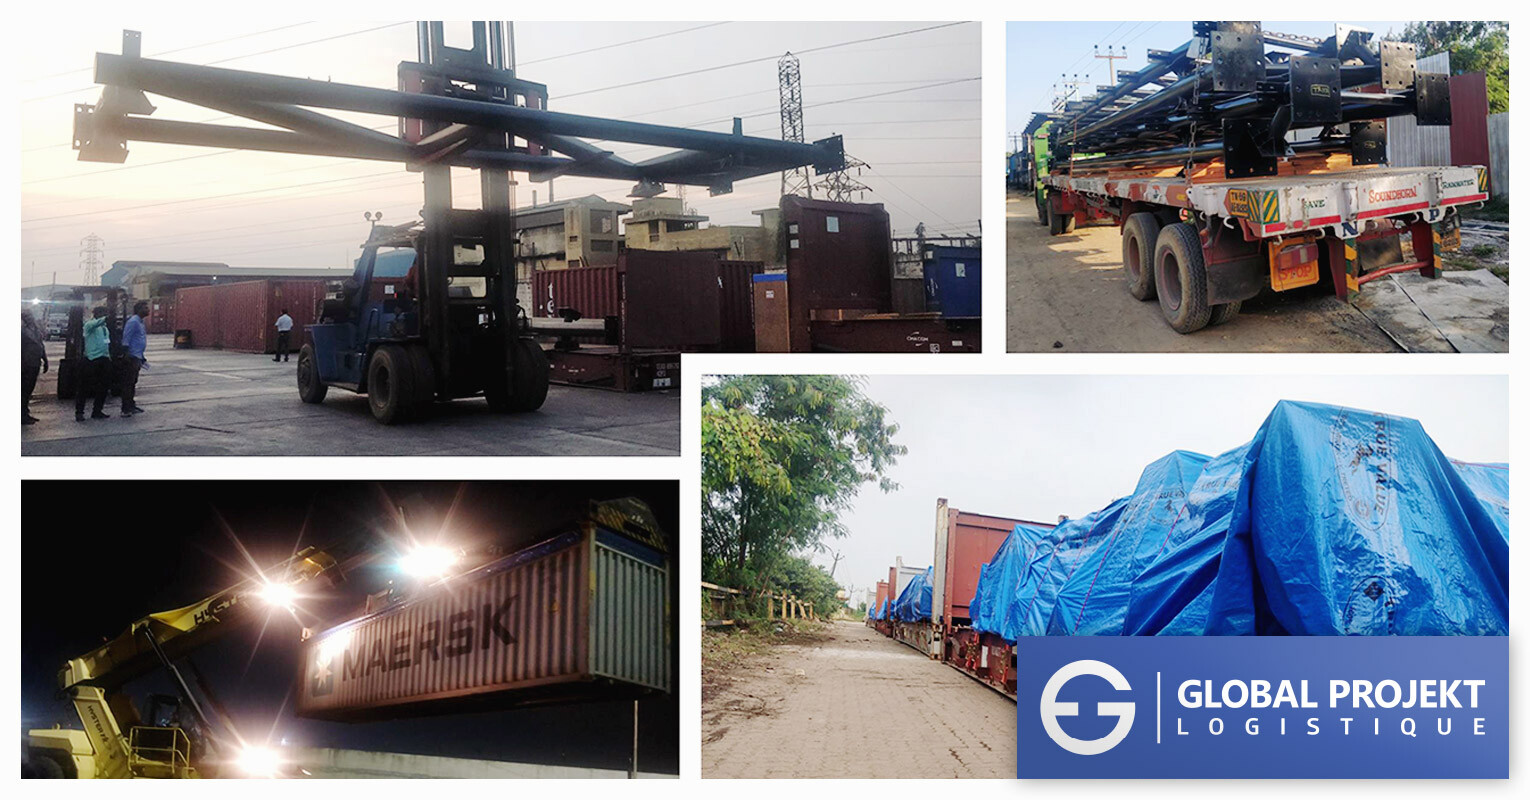 Global Projekt Lgistique Recently Shipped Apapa for a Roof Top Project for Nigeria 2